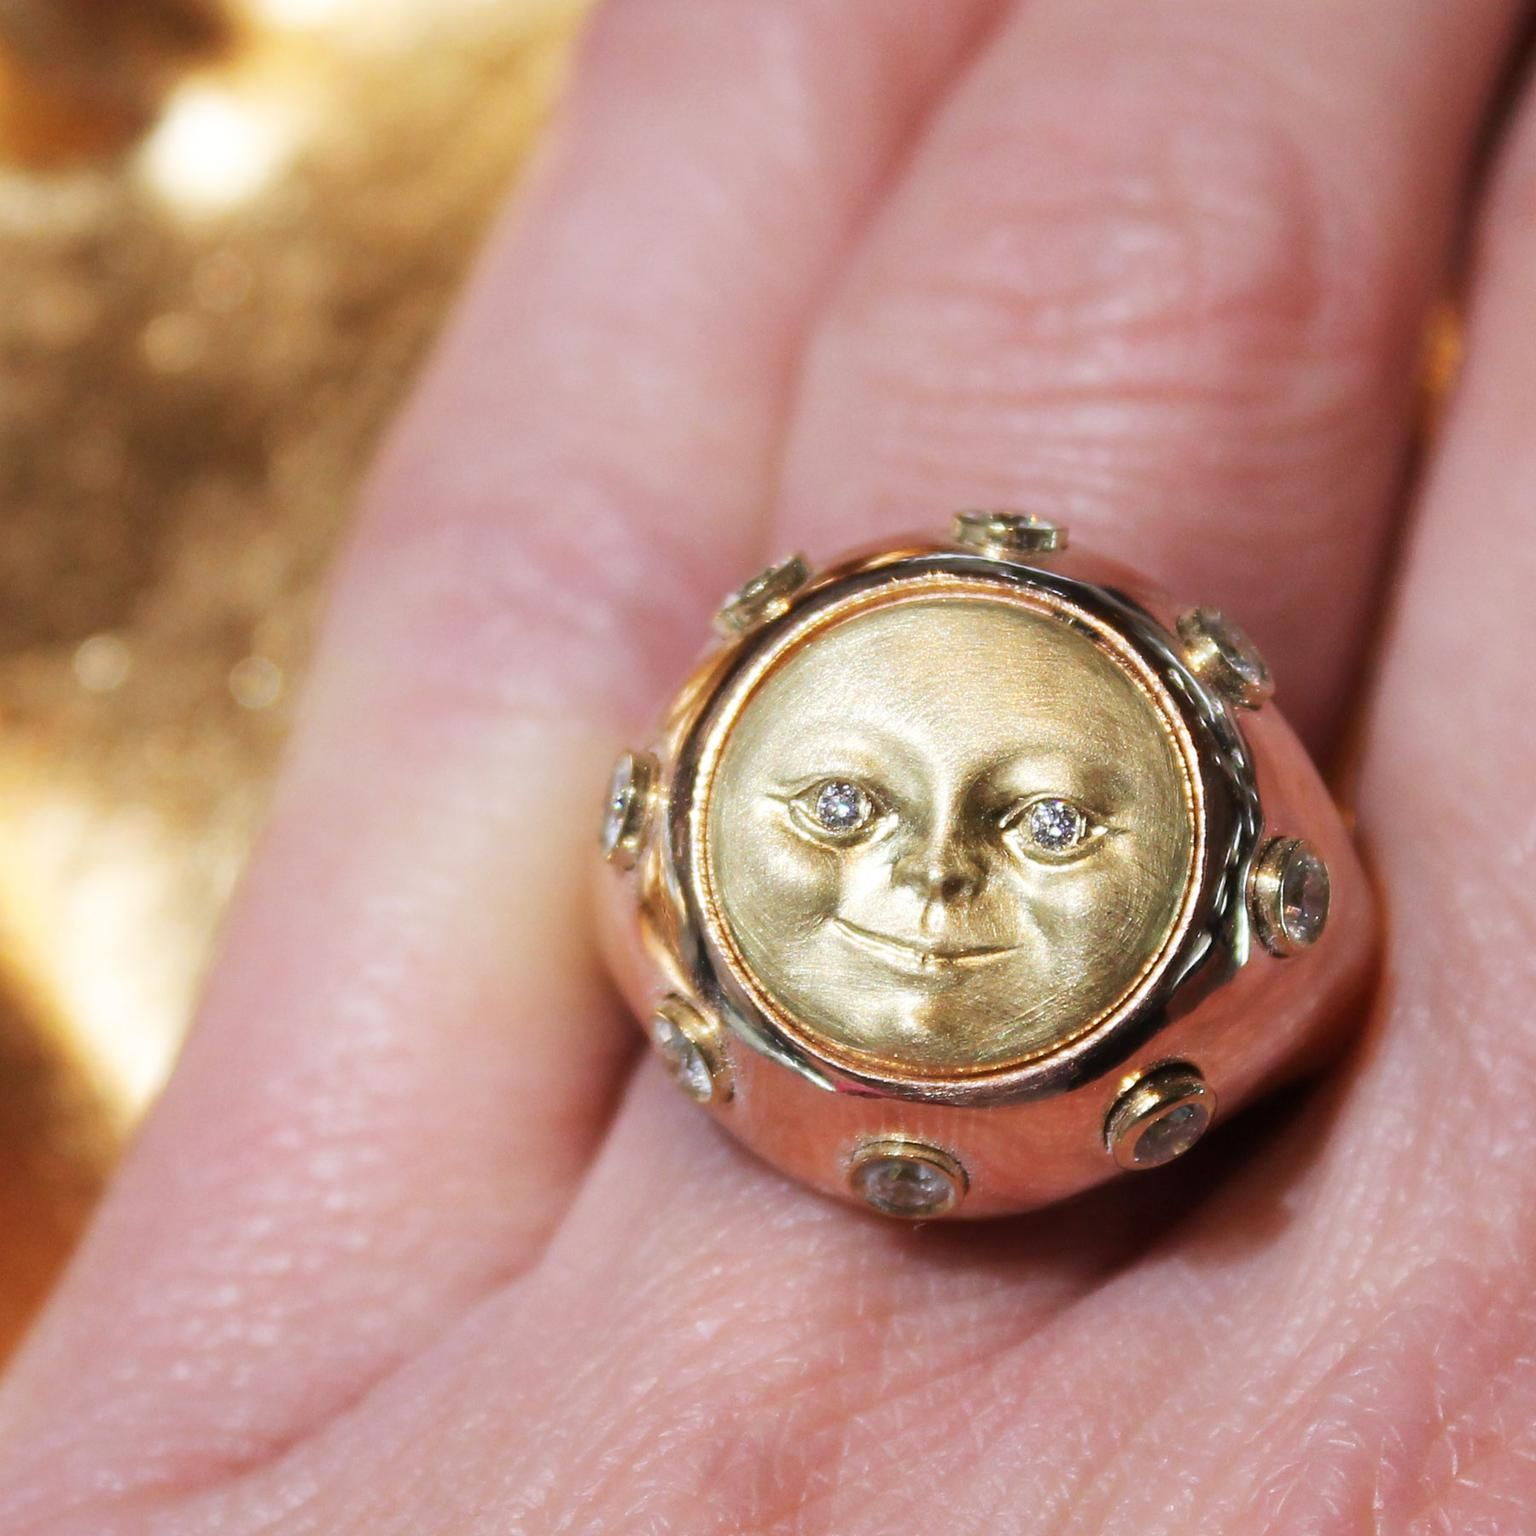 Moonface gold signet ring | Moon face, Couture and Ring